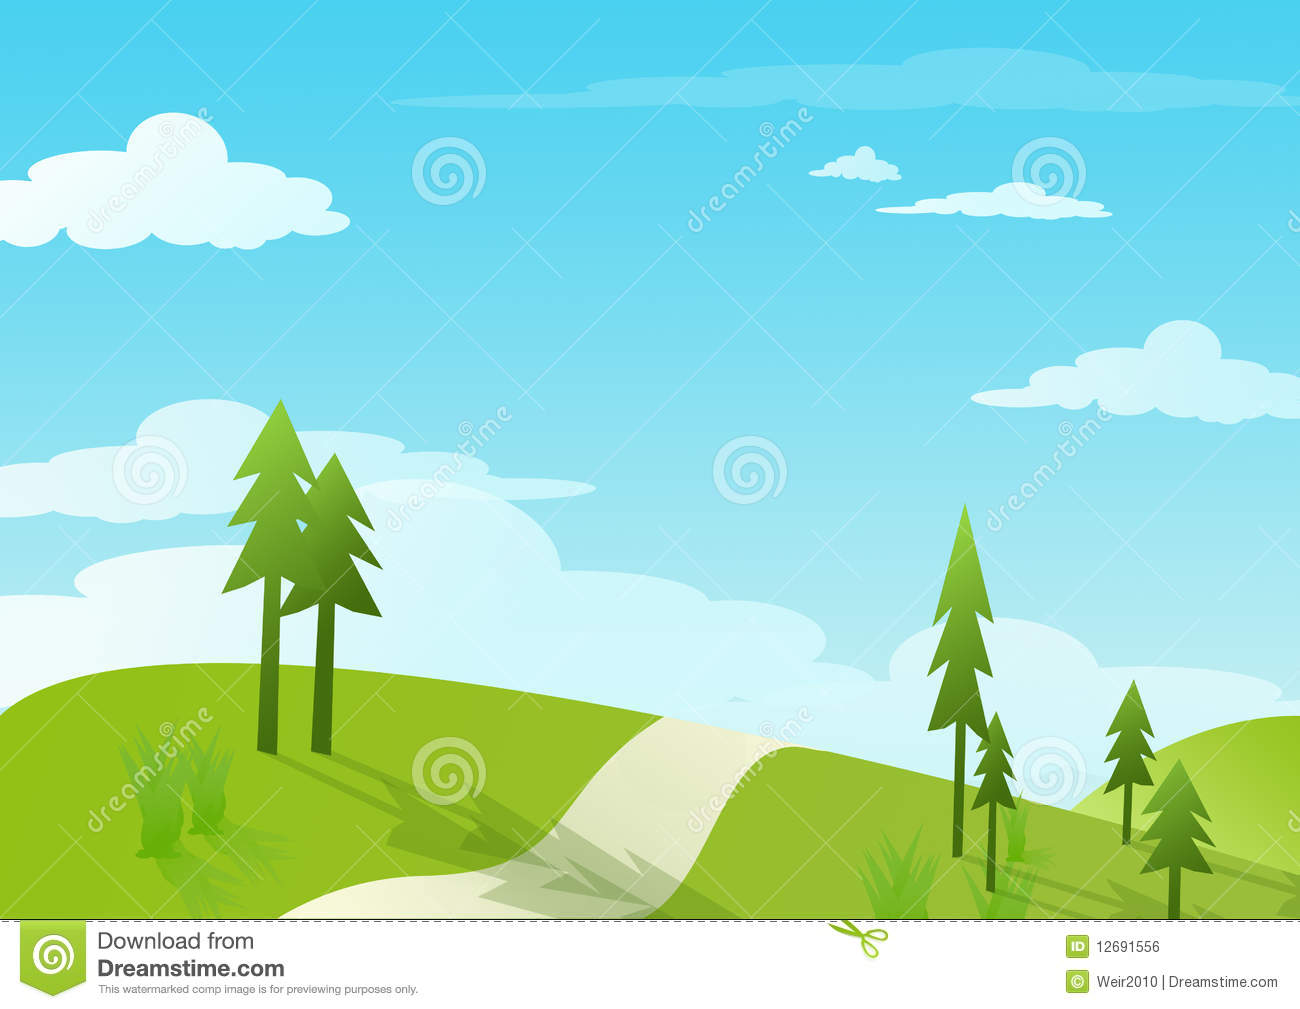 Blue sky and green hill - illustrations